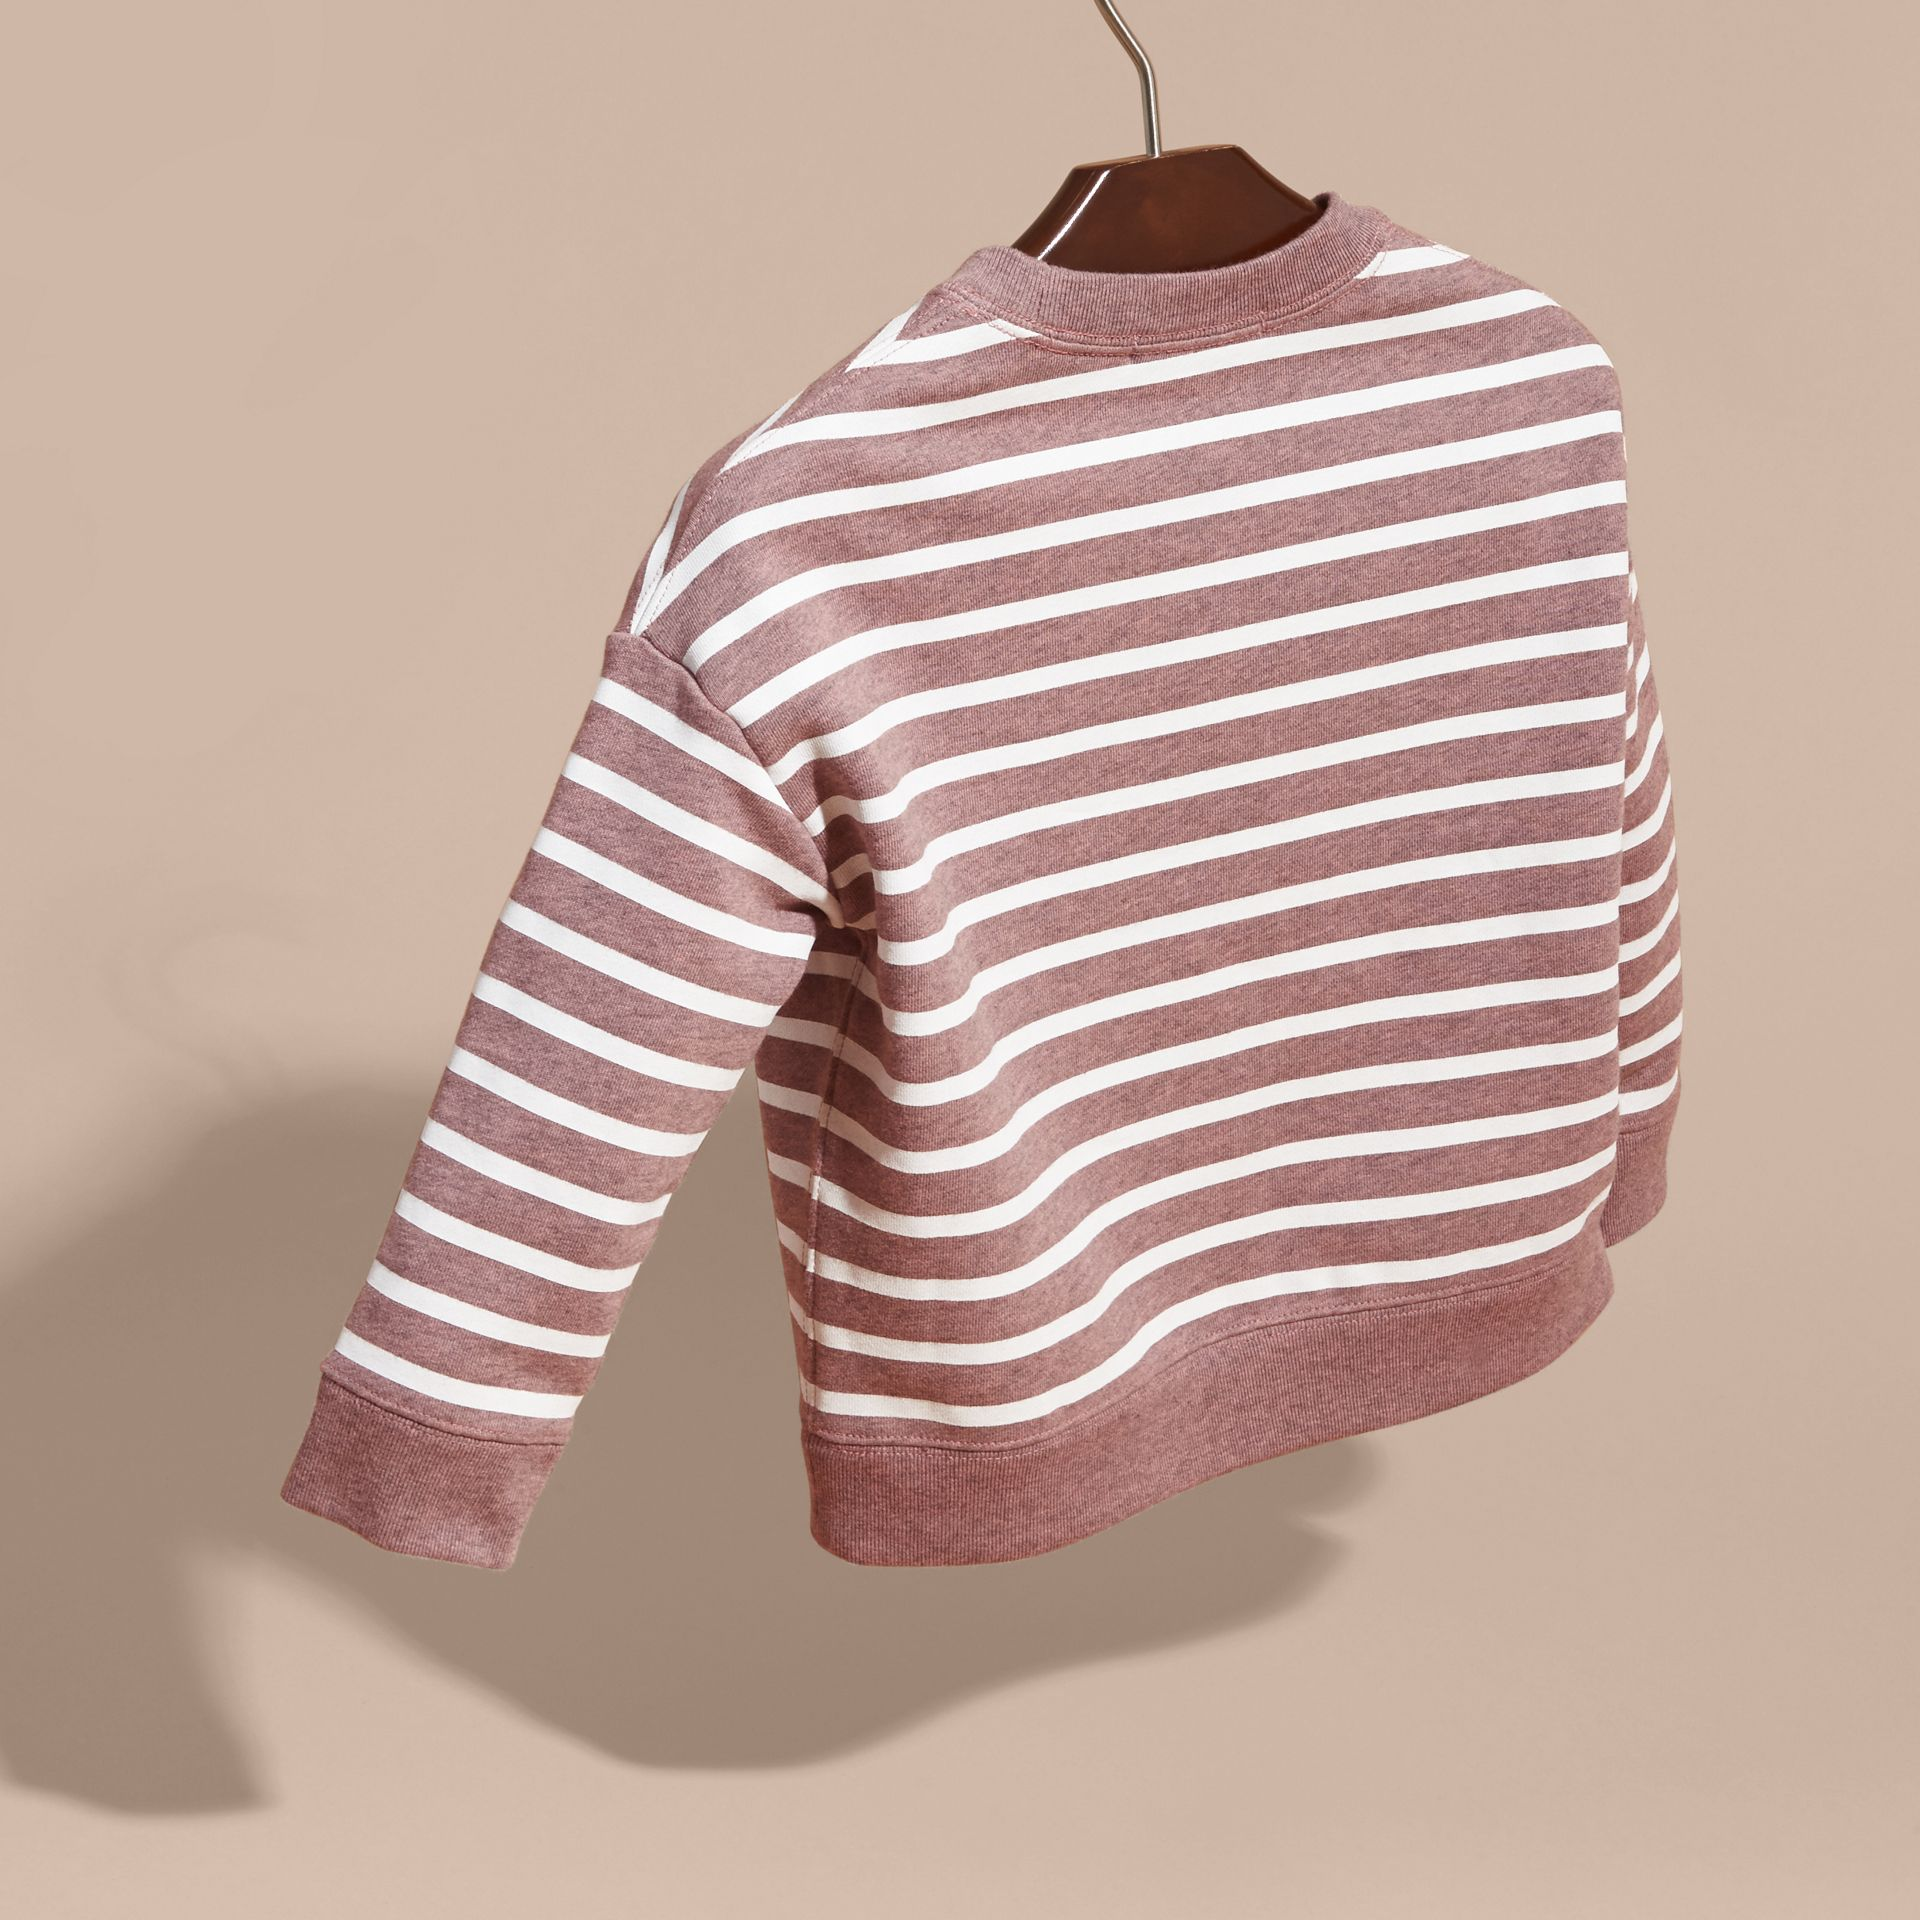 Striped Cotton Sweatshirt in Pink Azalea Melange | Burberry - gallery image 4